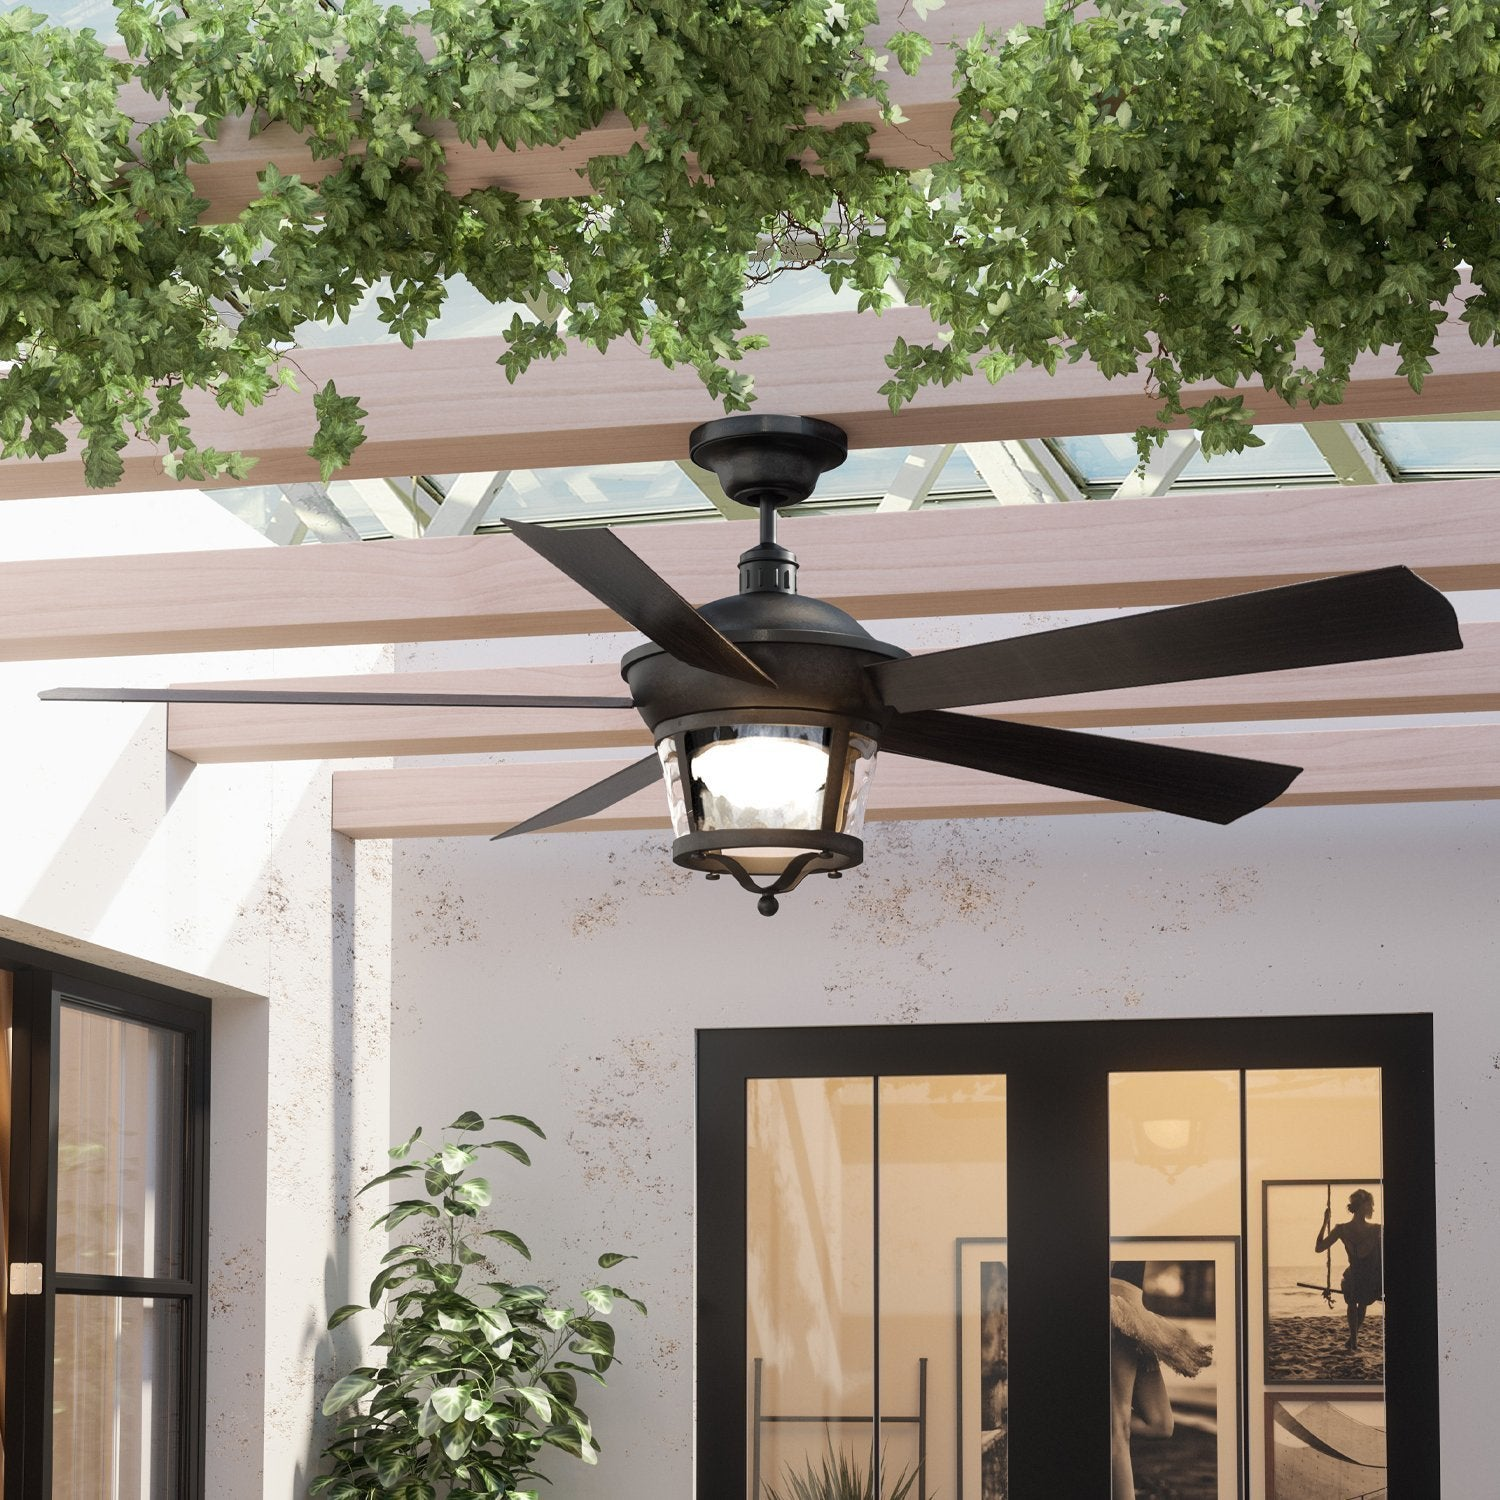 Uhp9181 Modern Farmhouse Indoor Or Outdoor Ceiling Fan 19 5 H X 52 W